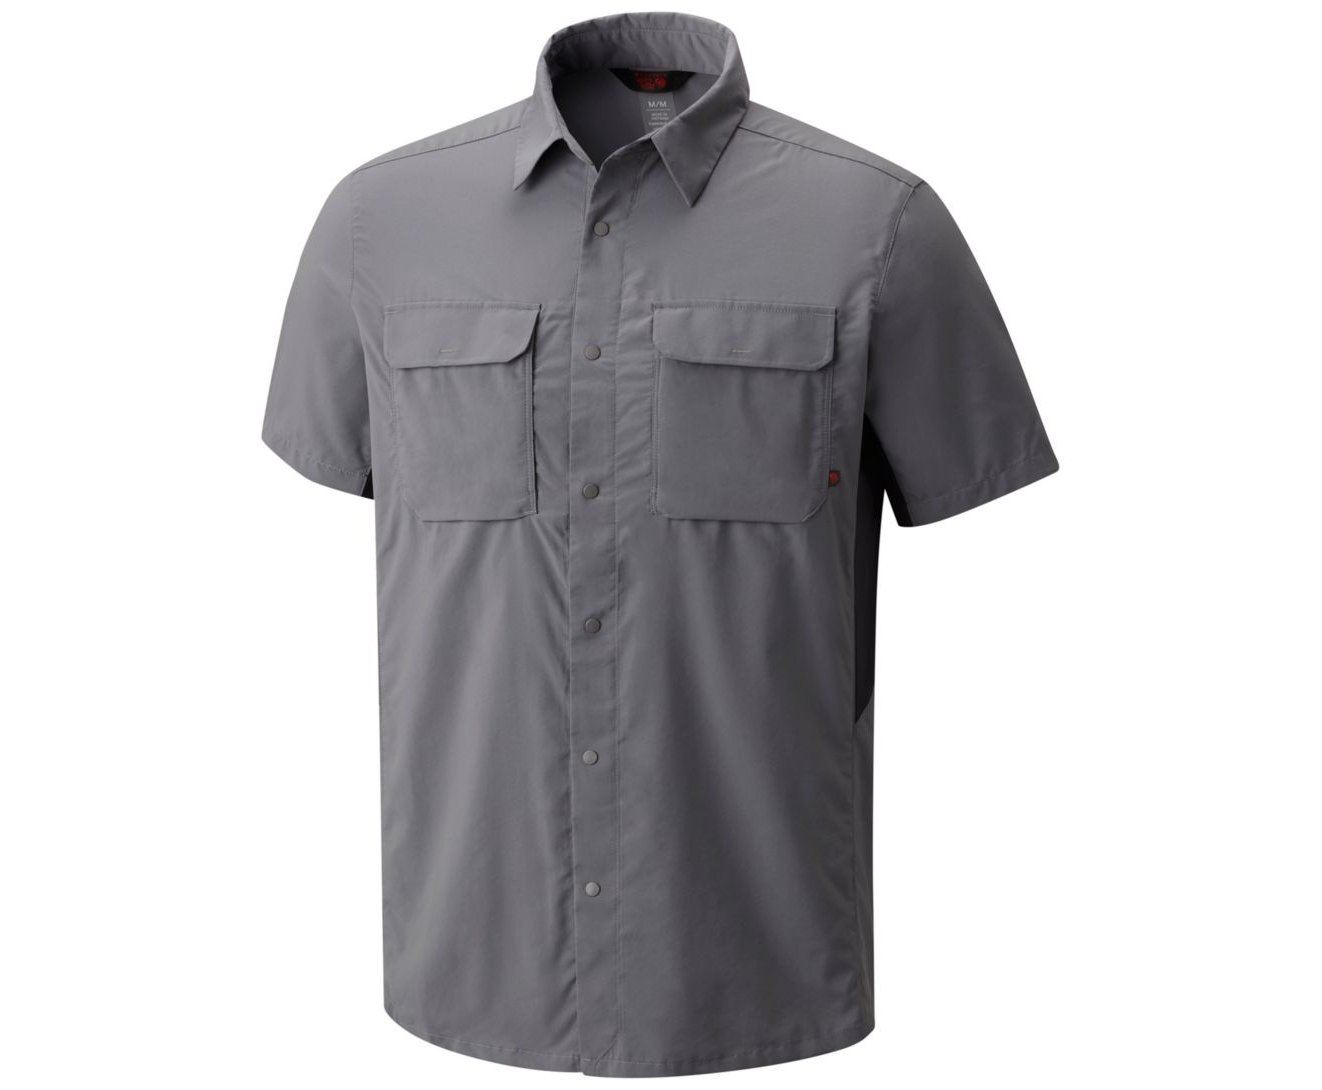 Mountain Hardwear Men's Canyon Pro™ SS Shirt JR1MHcpss